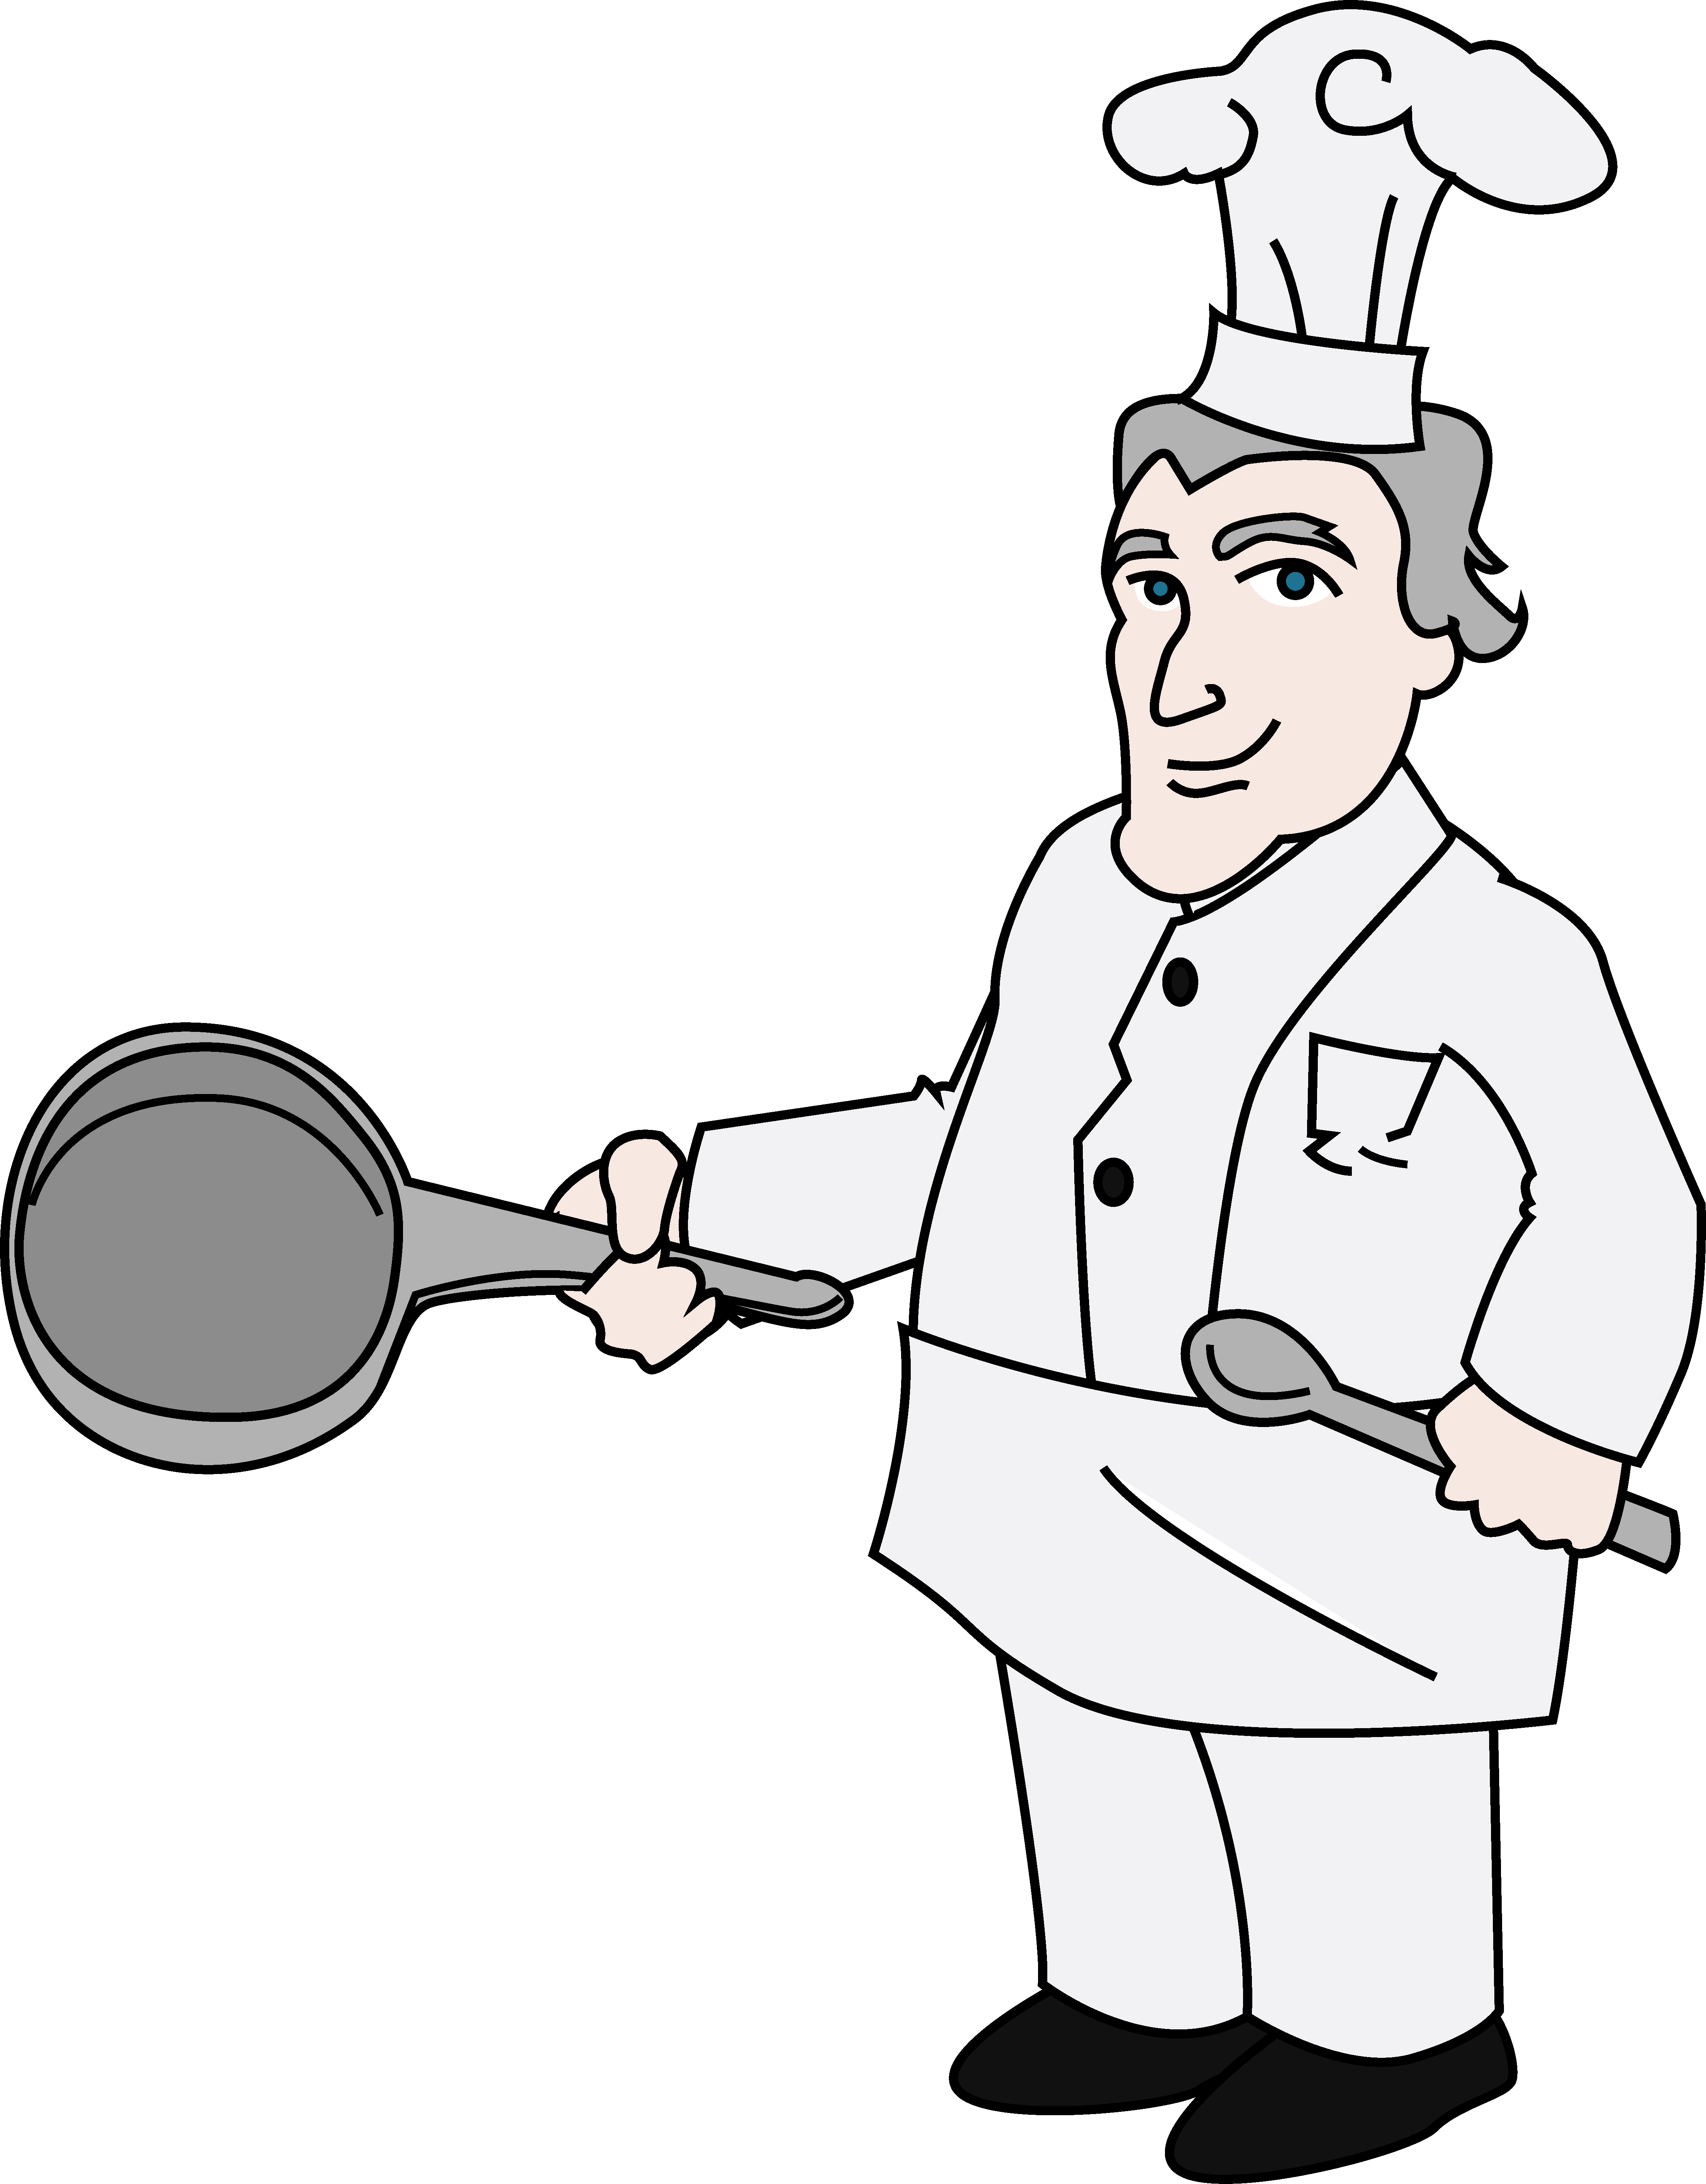 Clipart chef clip art royalty free library Chef Clipart Illustration - Free Clip Art clip art royalty free library